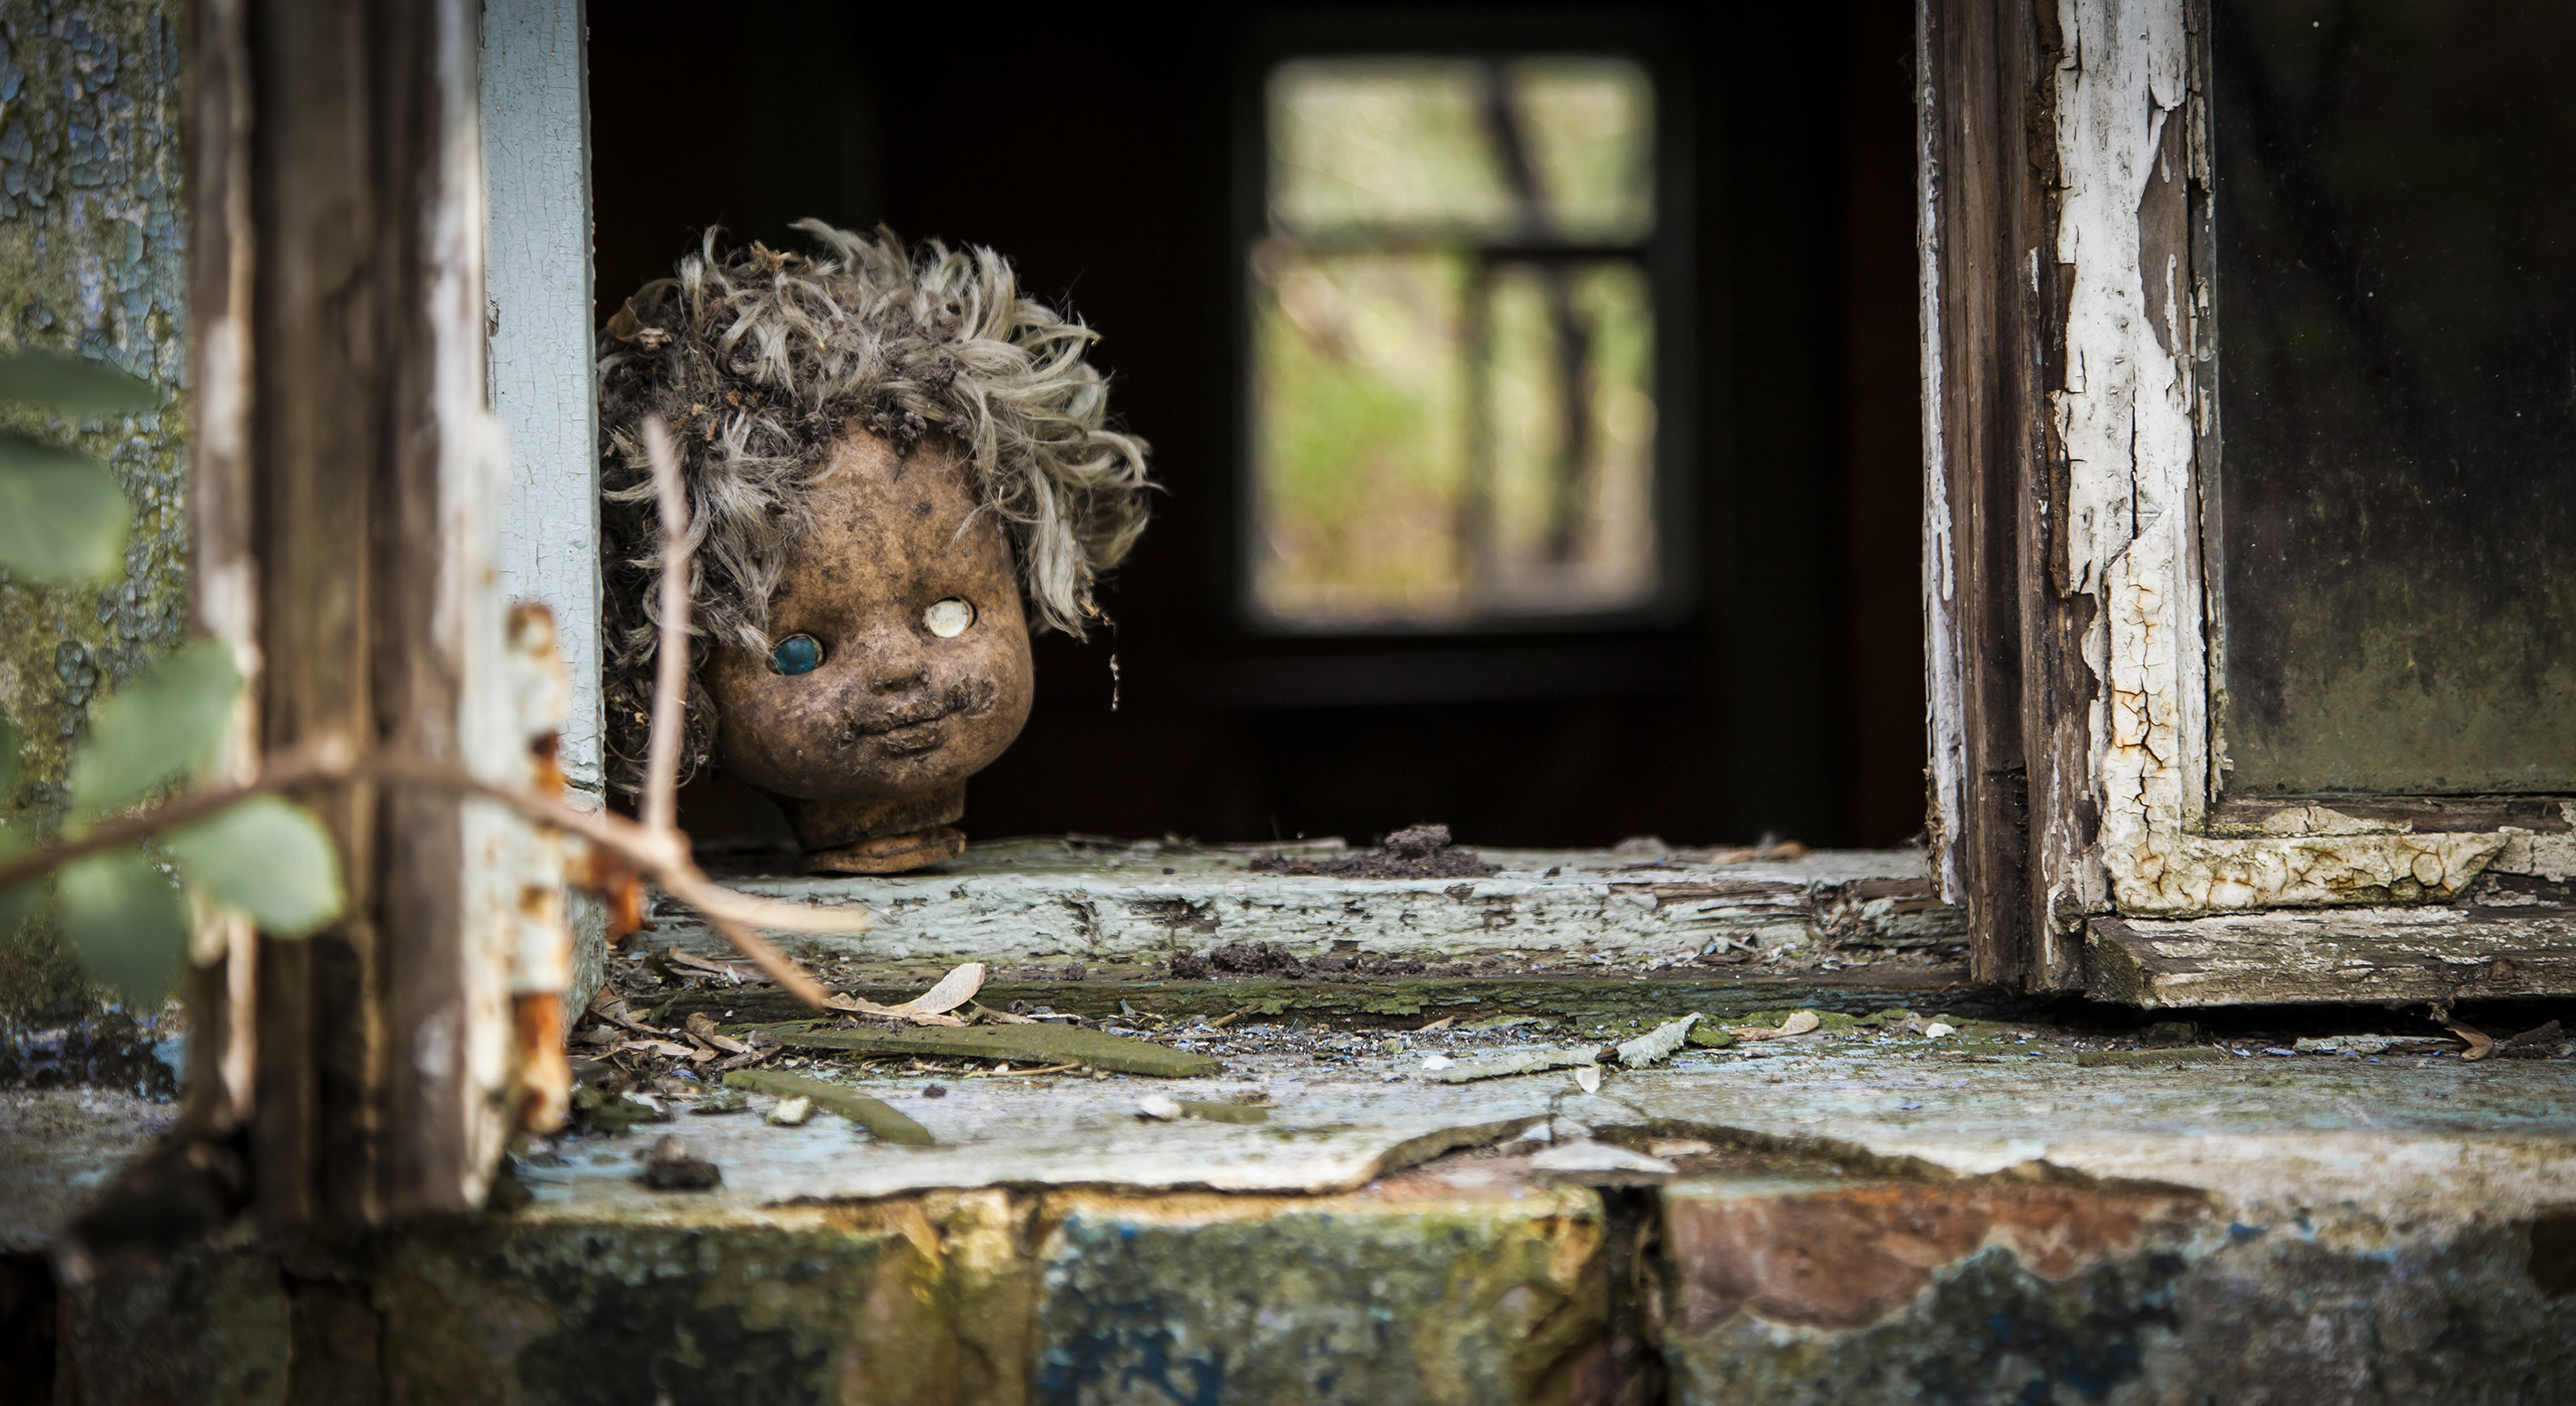 Old doll looks out a window in an abandoned house in Pripyat - Chernobyl nuclear power plant zone of alienation